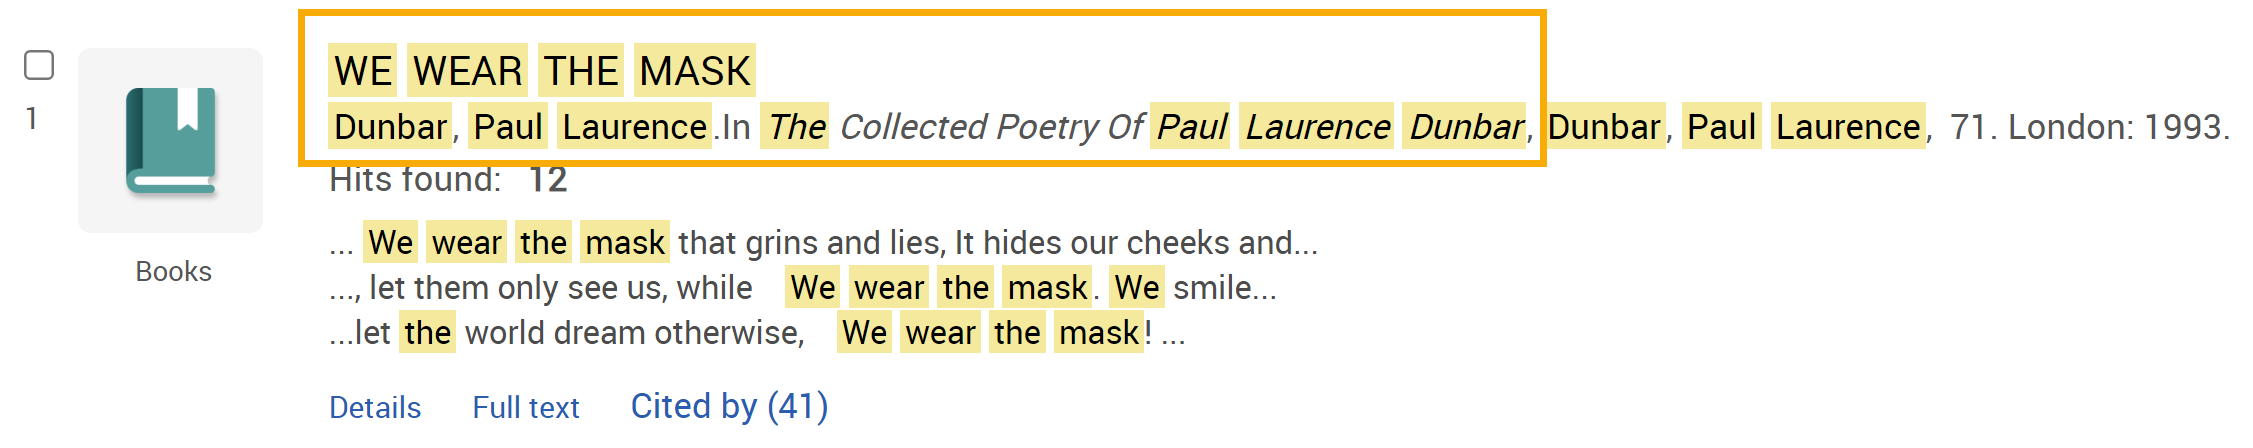 Search result screenshot - We Wear the Mask by Paul Laurence Dunbar